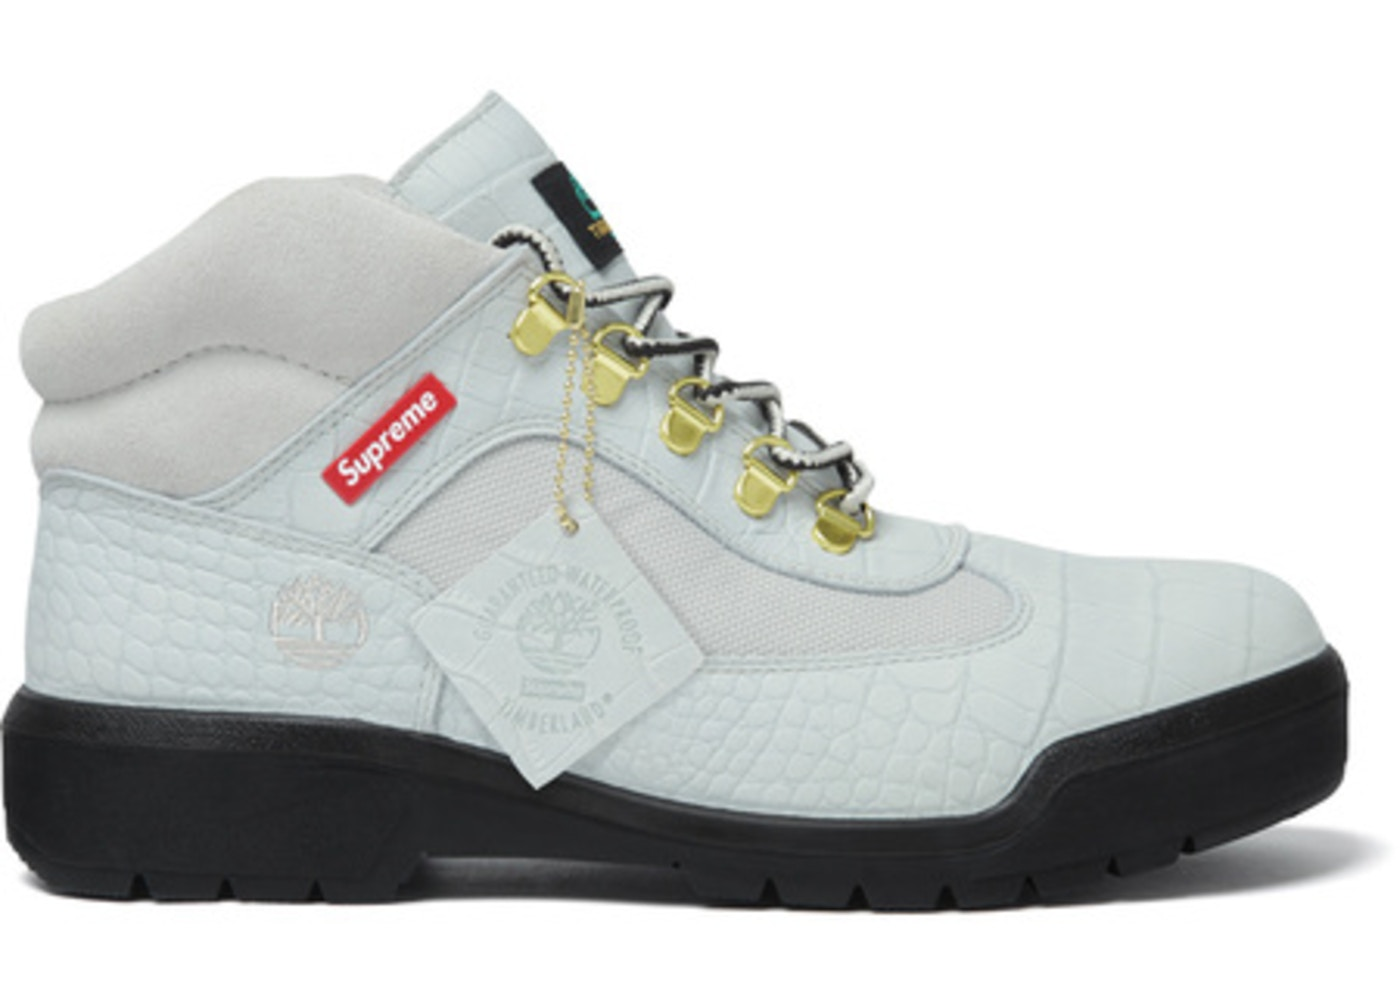 check out b148e 28f4a Timberland Field Boot Supreme White - undefined